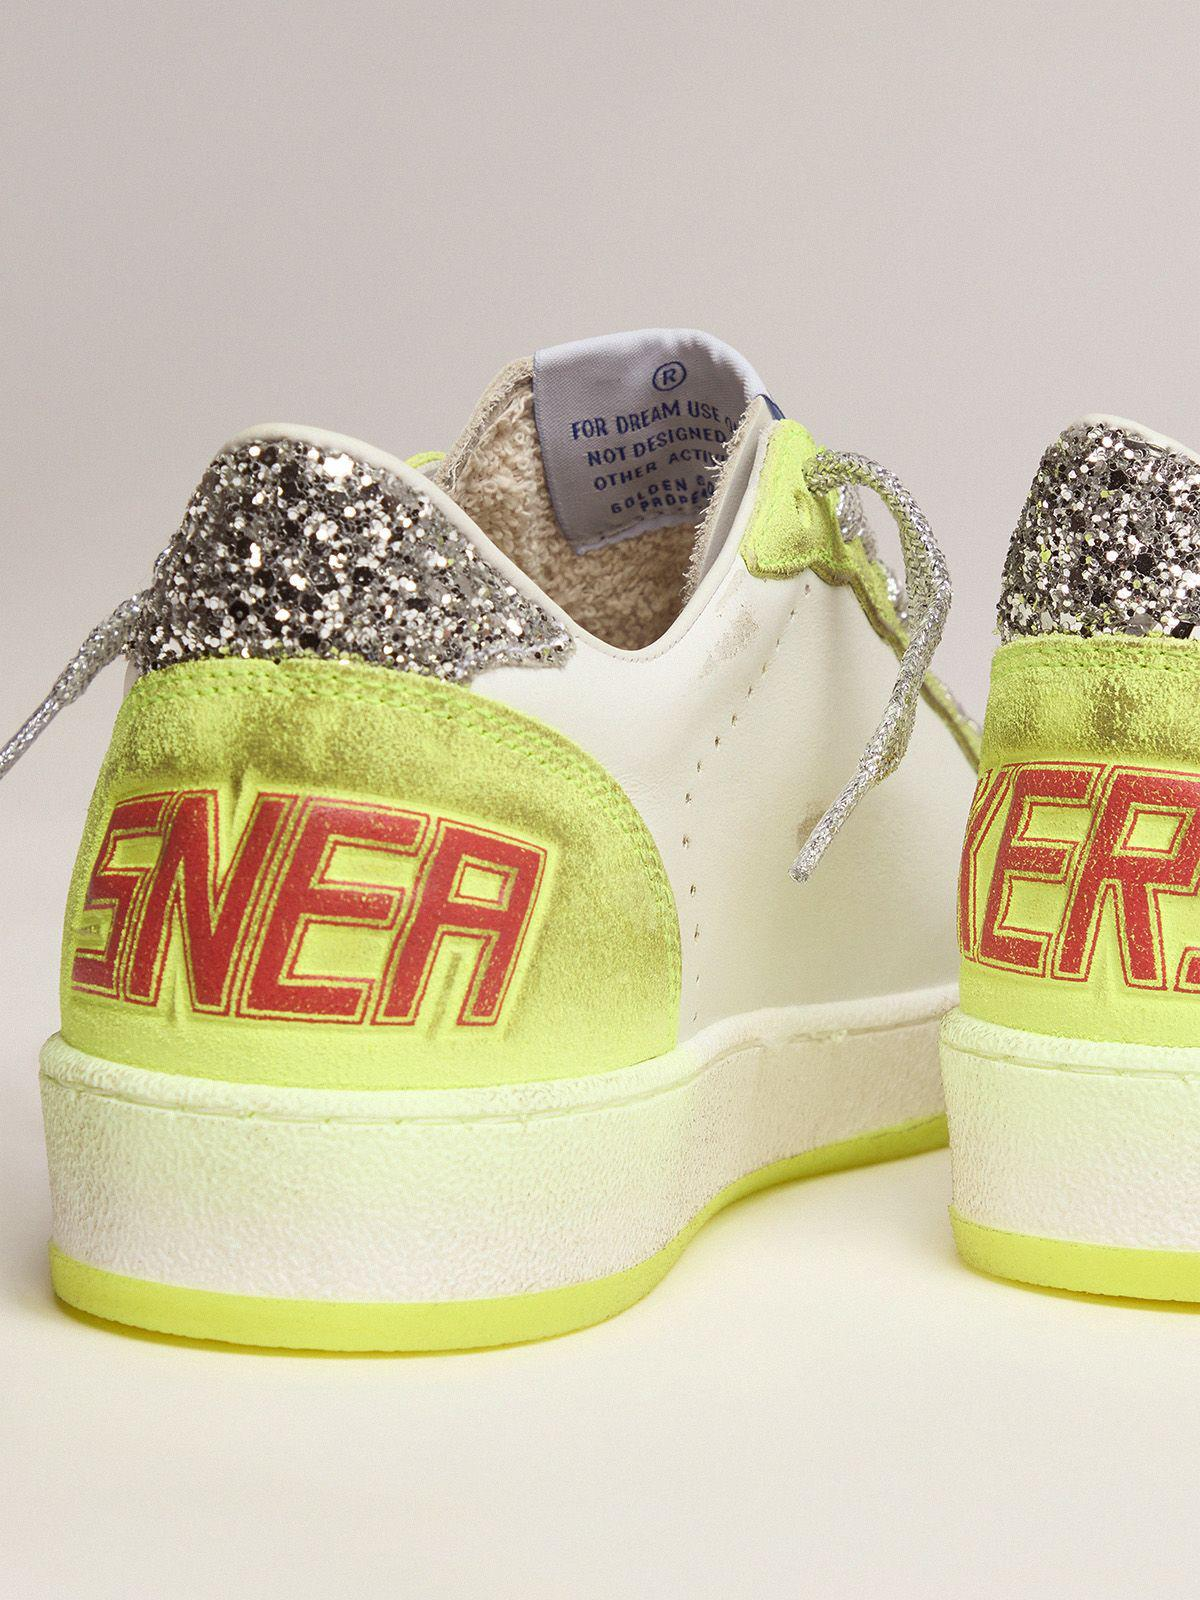 White Ball Star sneakers with fluorescent yellow inserts and glitter 3